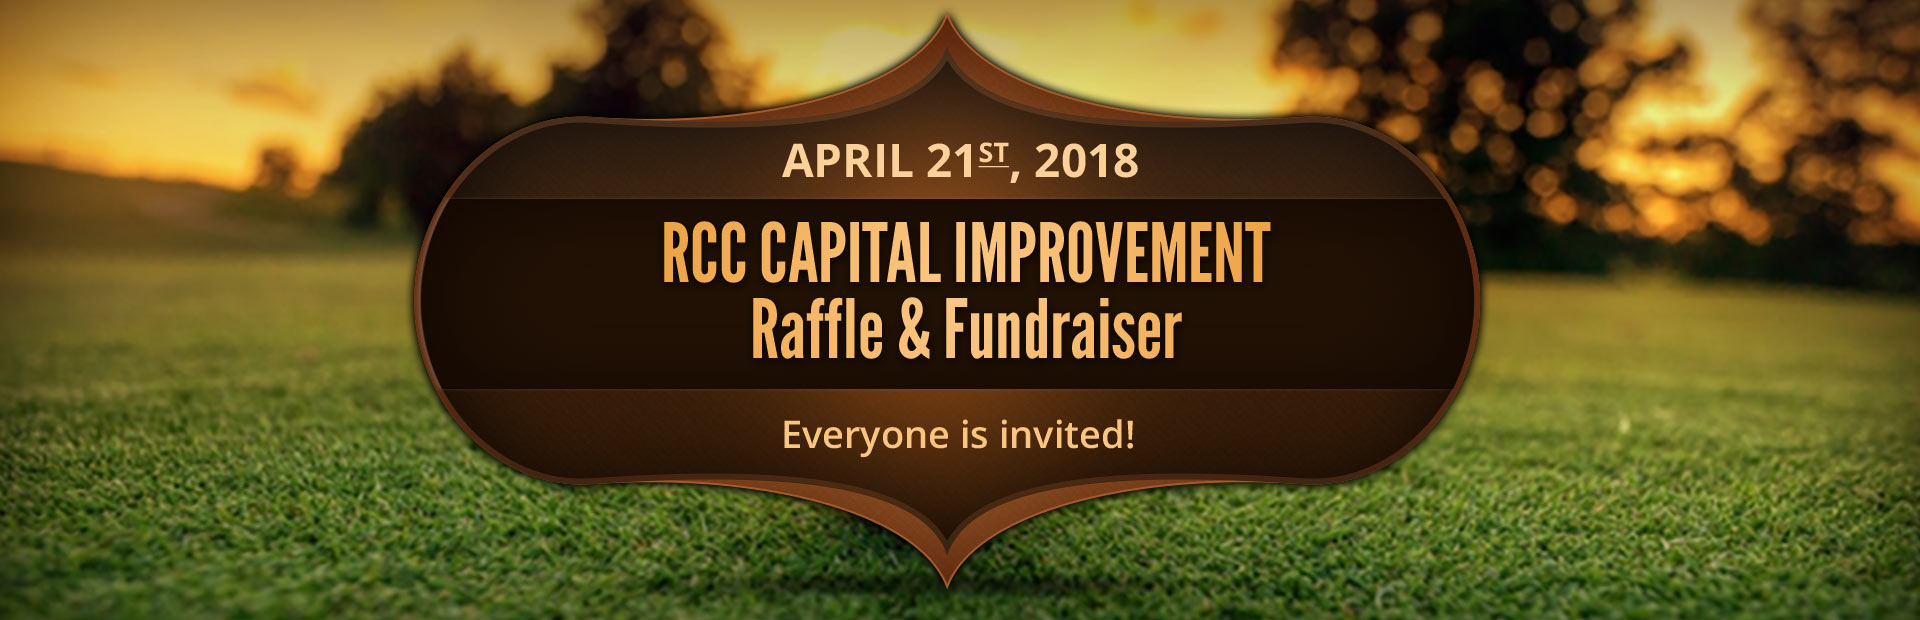 RCC Capital Improvement Raffle and Fundraiser April 21st 2018. Everyone is invited.